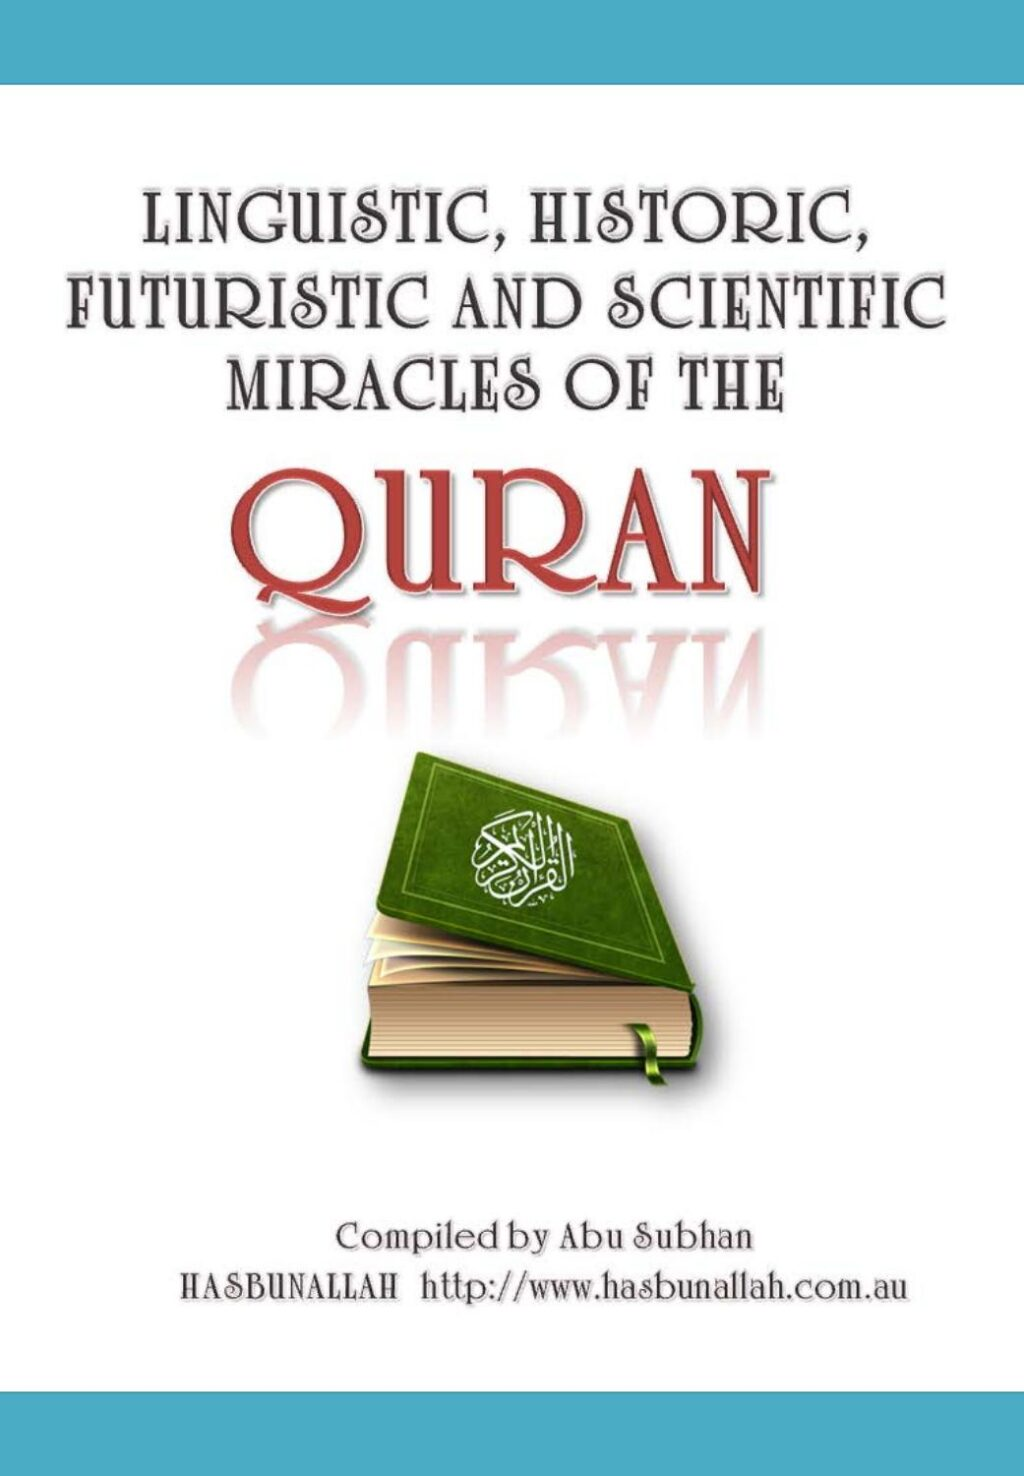 """the Quran miracles"" The darkness & light  (1/3)"